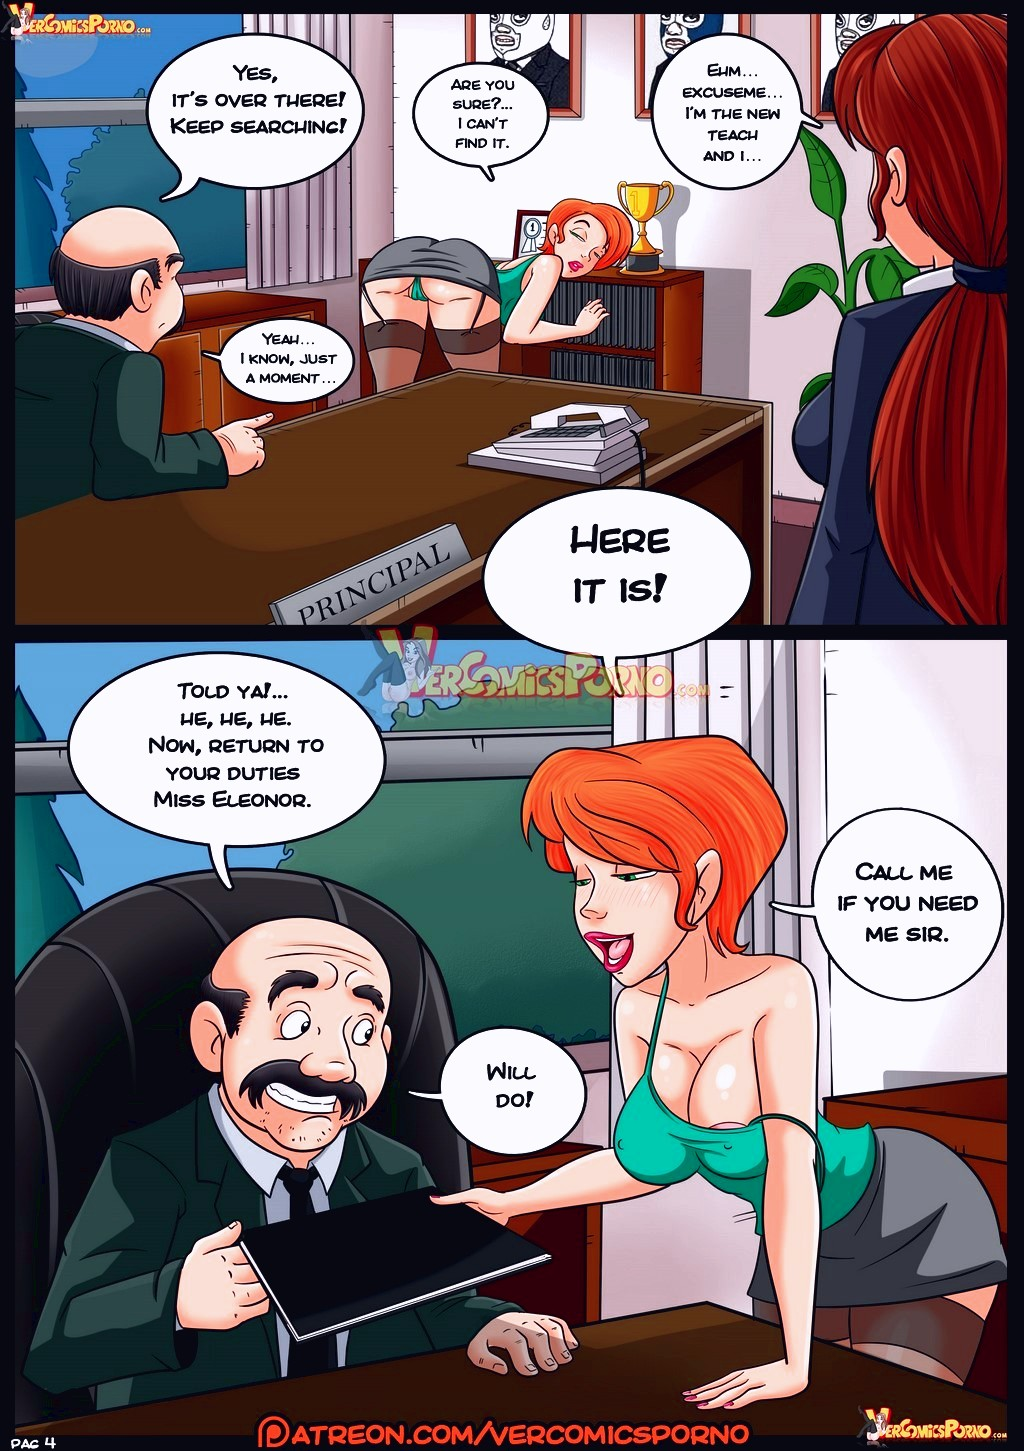 Valery Chronicles porn comic page 005